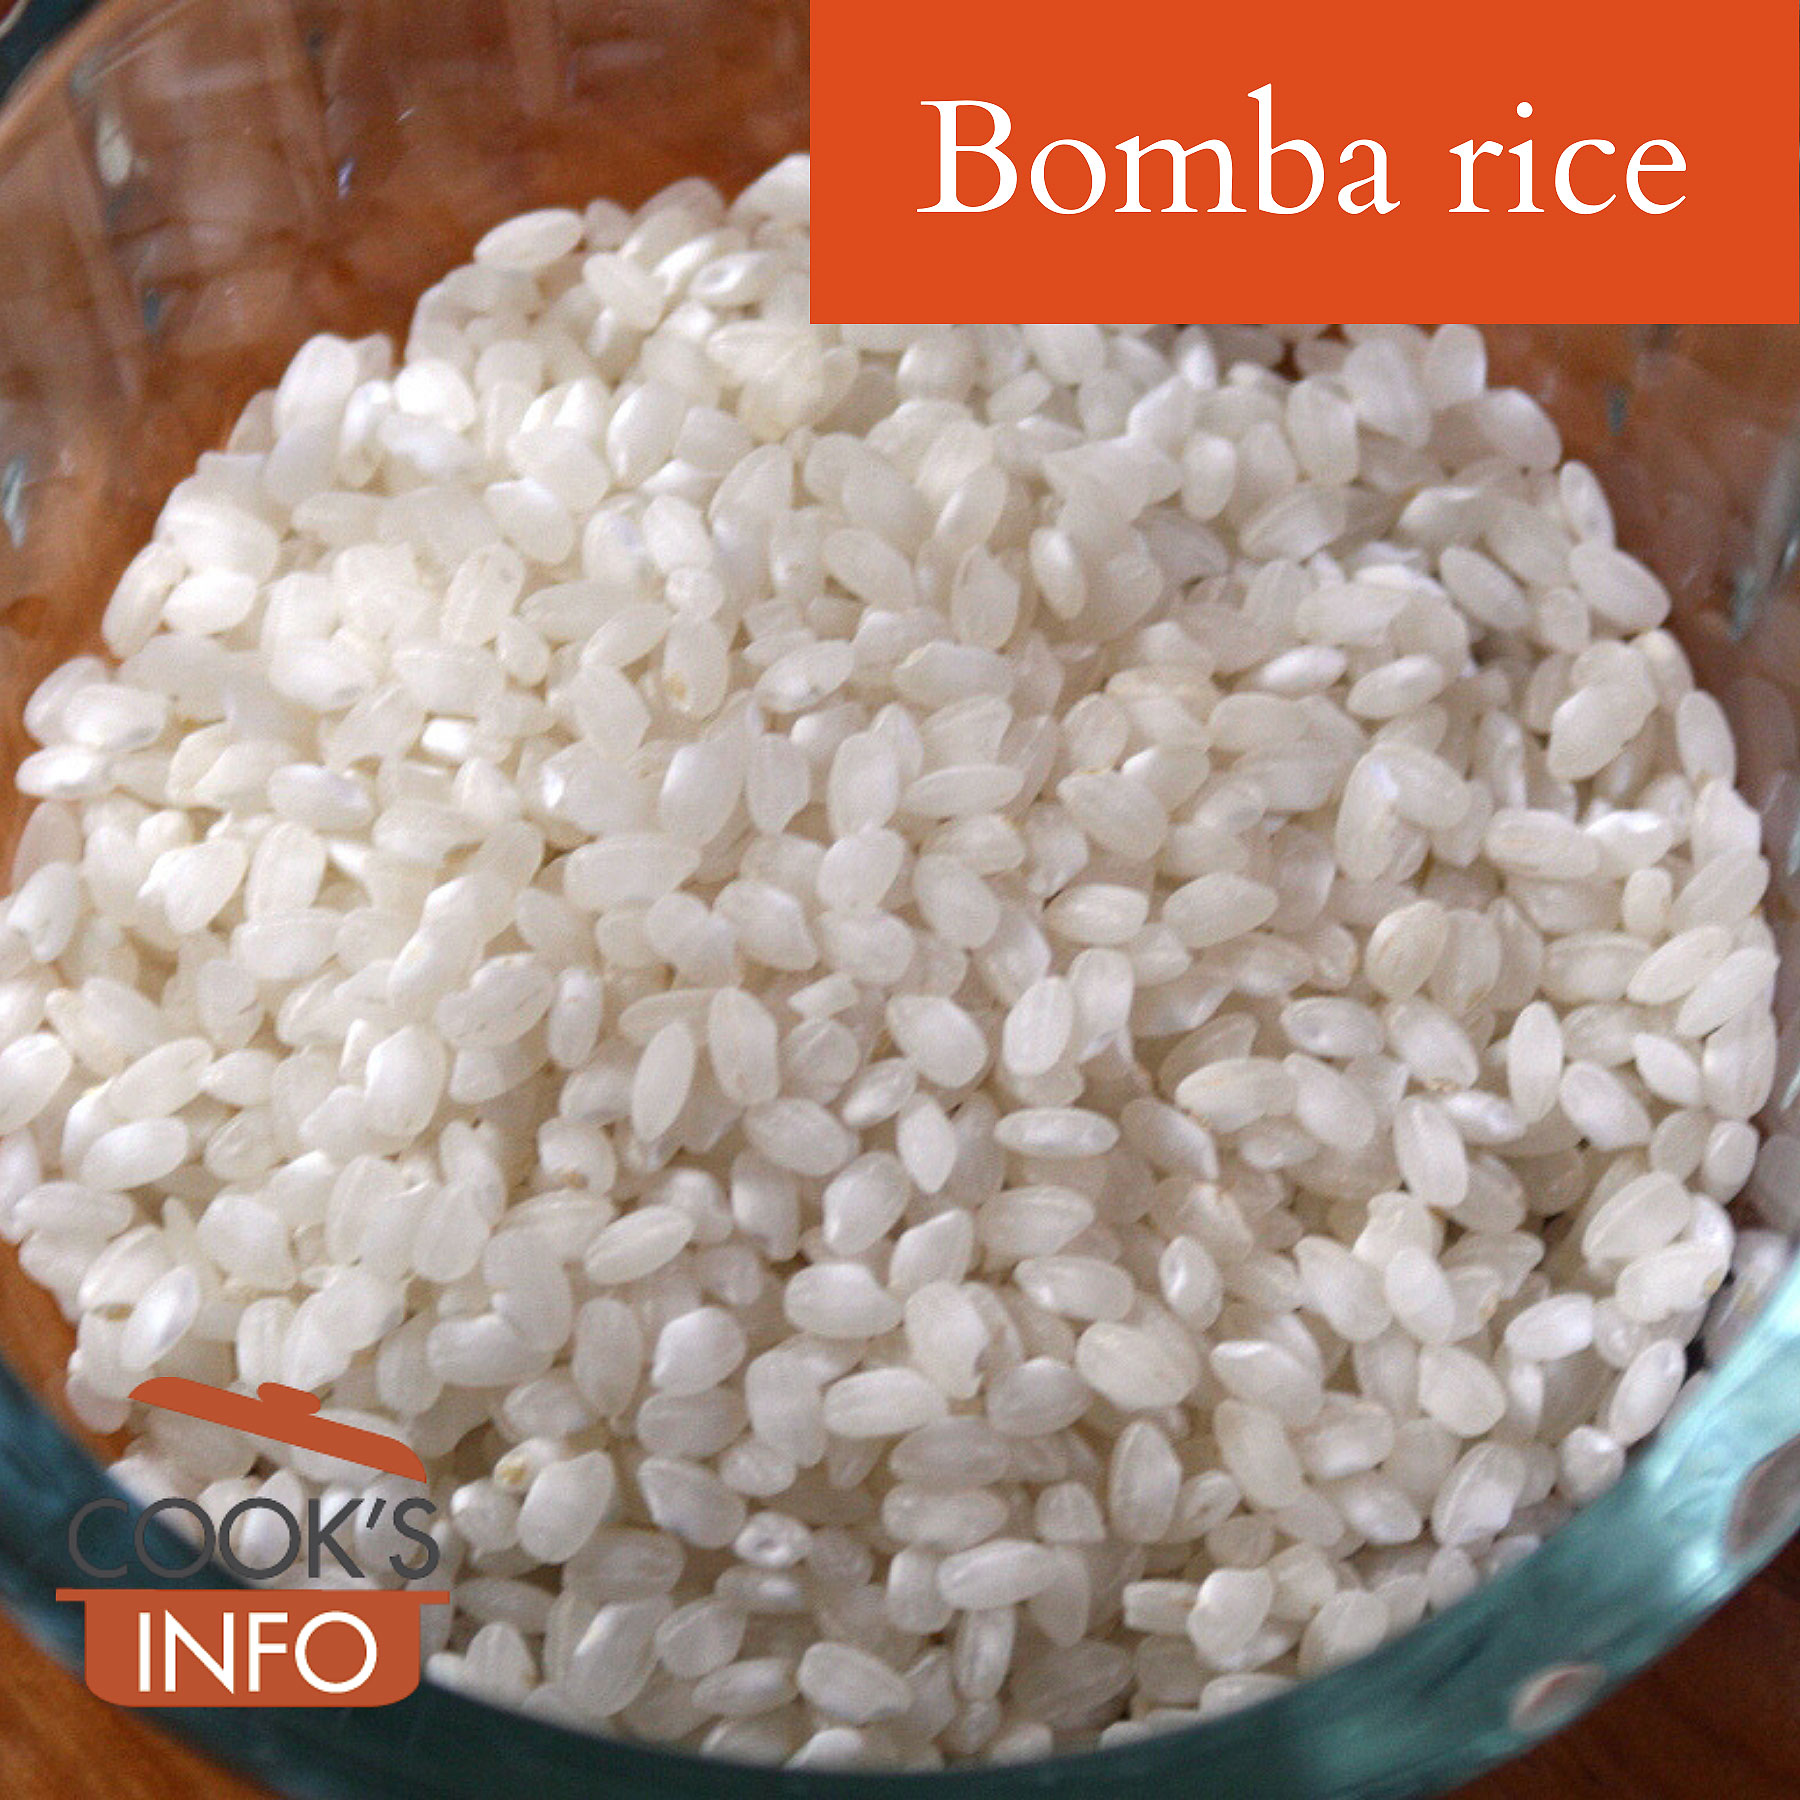 Bomba rice, dried